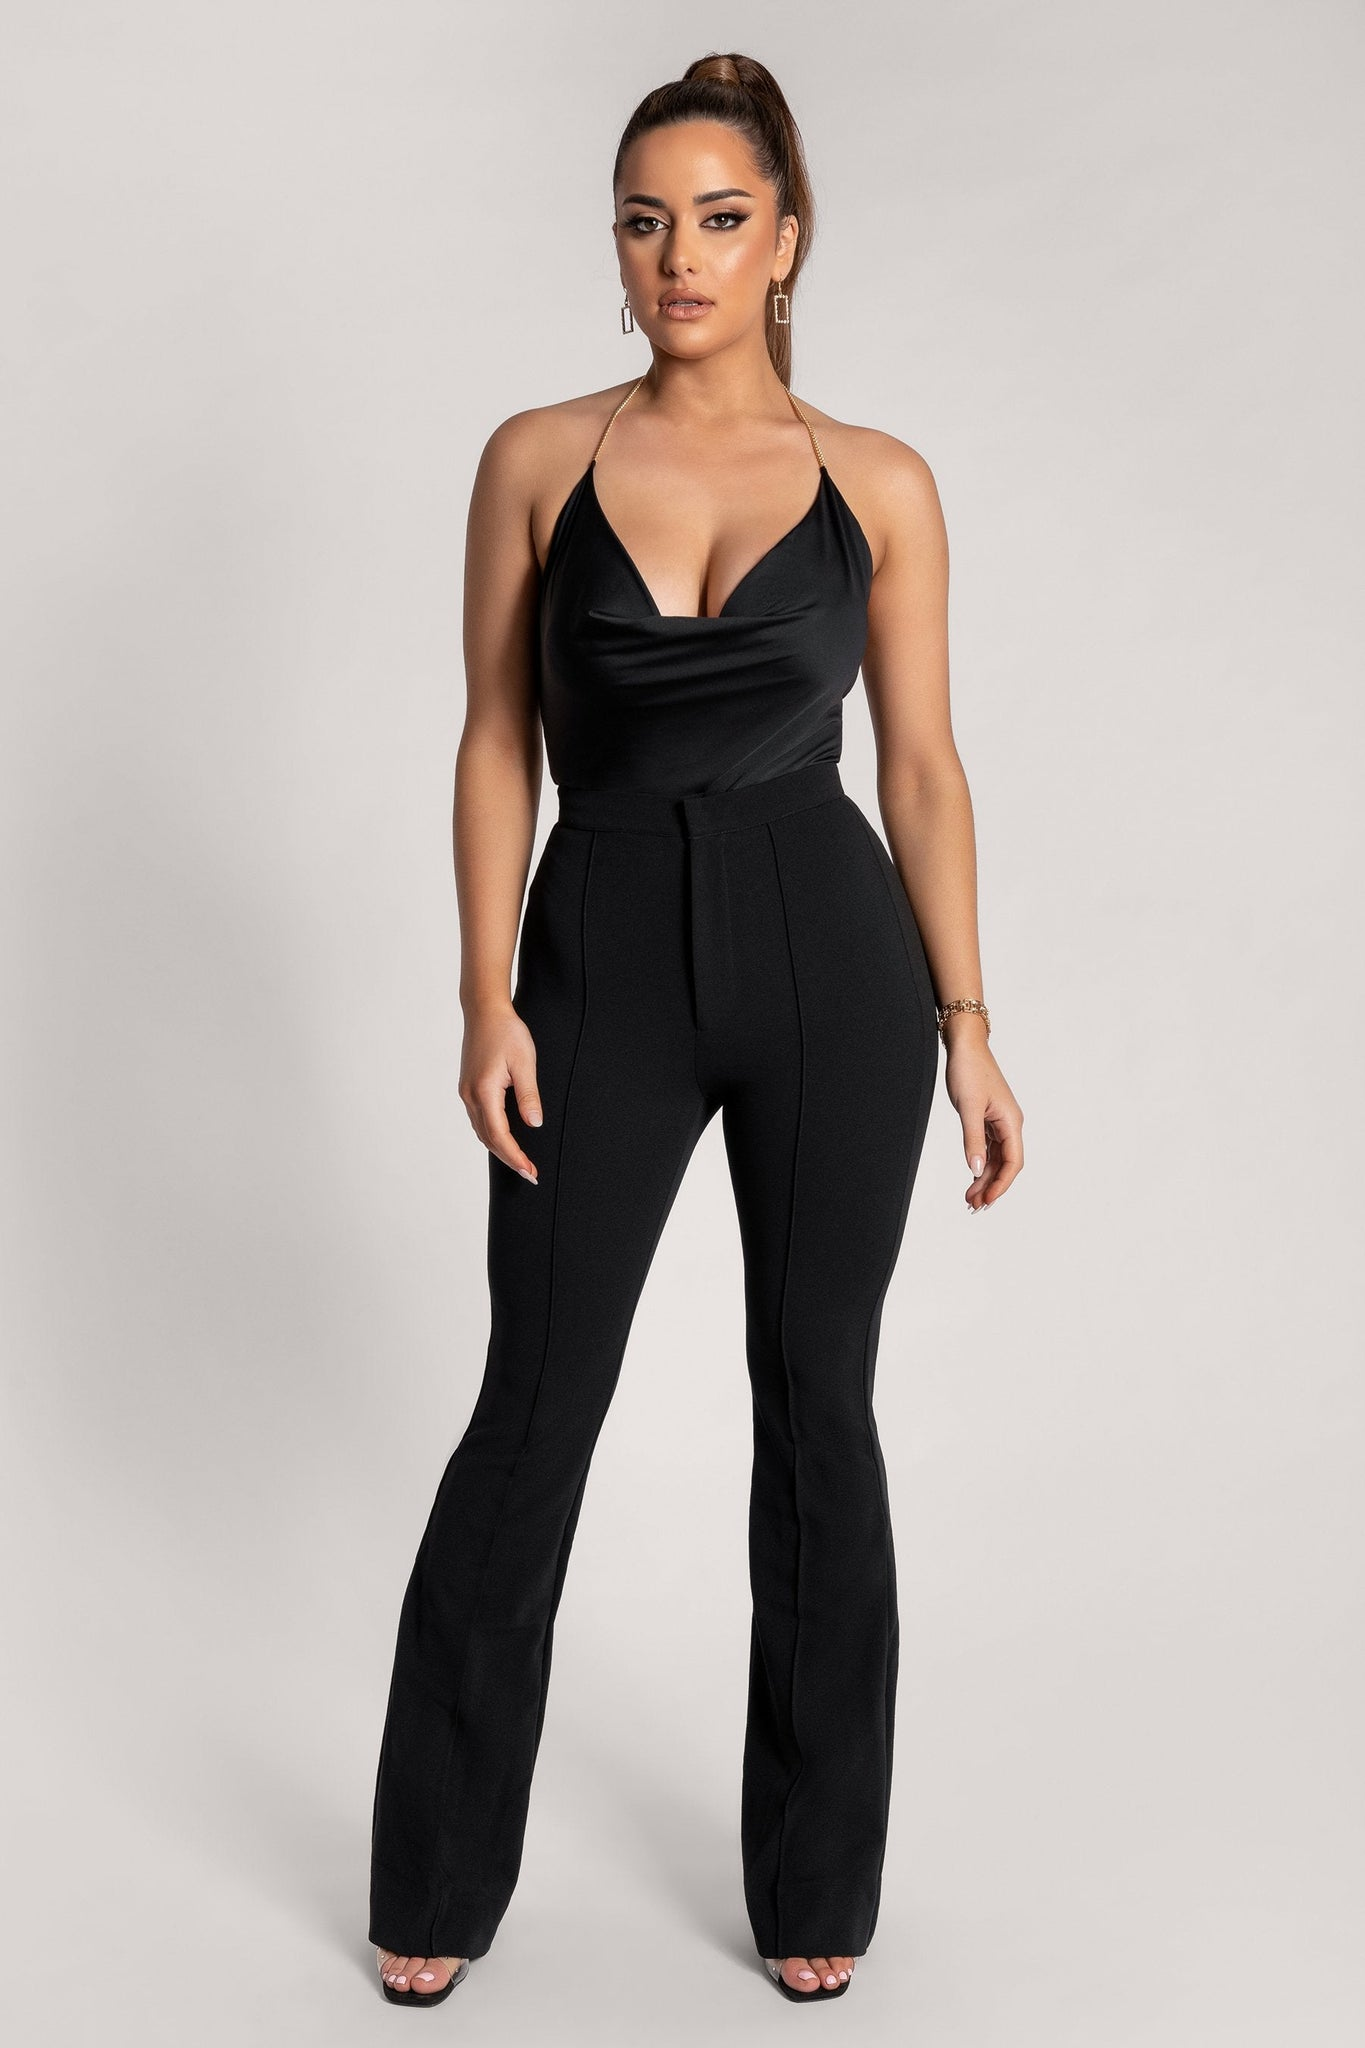 Zendaya Highwaisted Flare Pants - Black - MESHKI